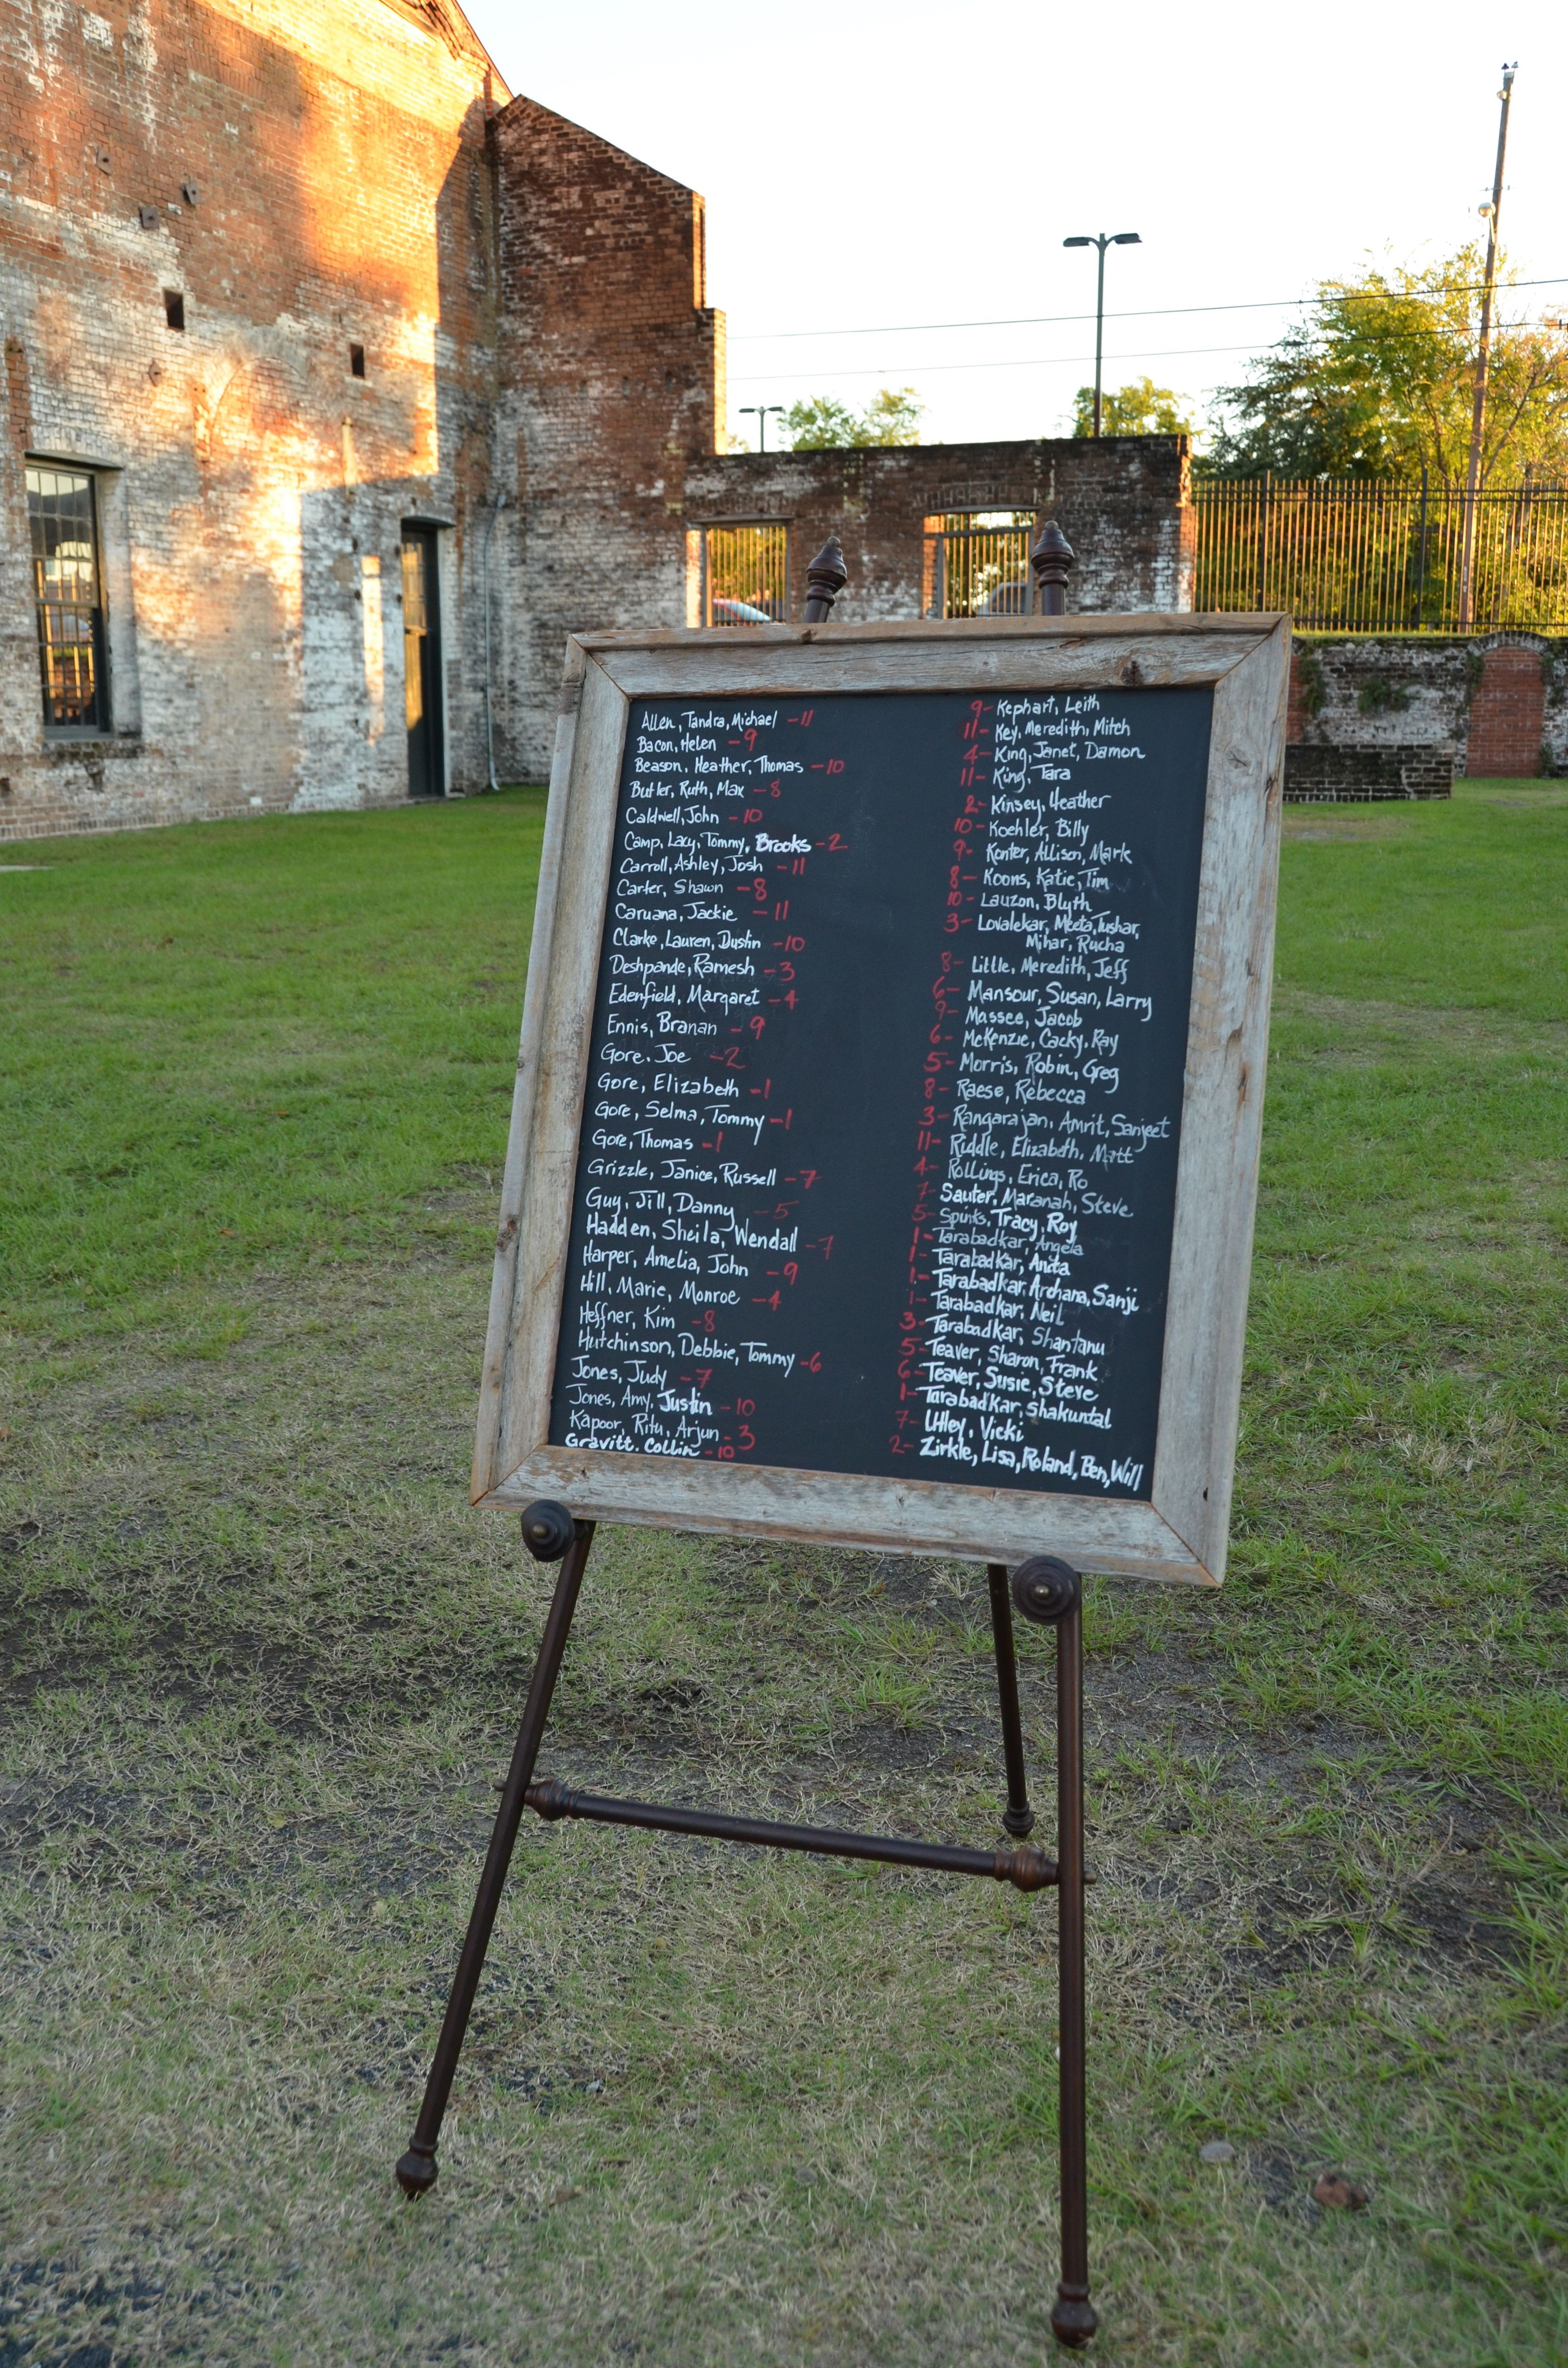 Seating chart: Old frame with glass painted with chalkboard paint ...